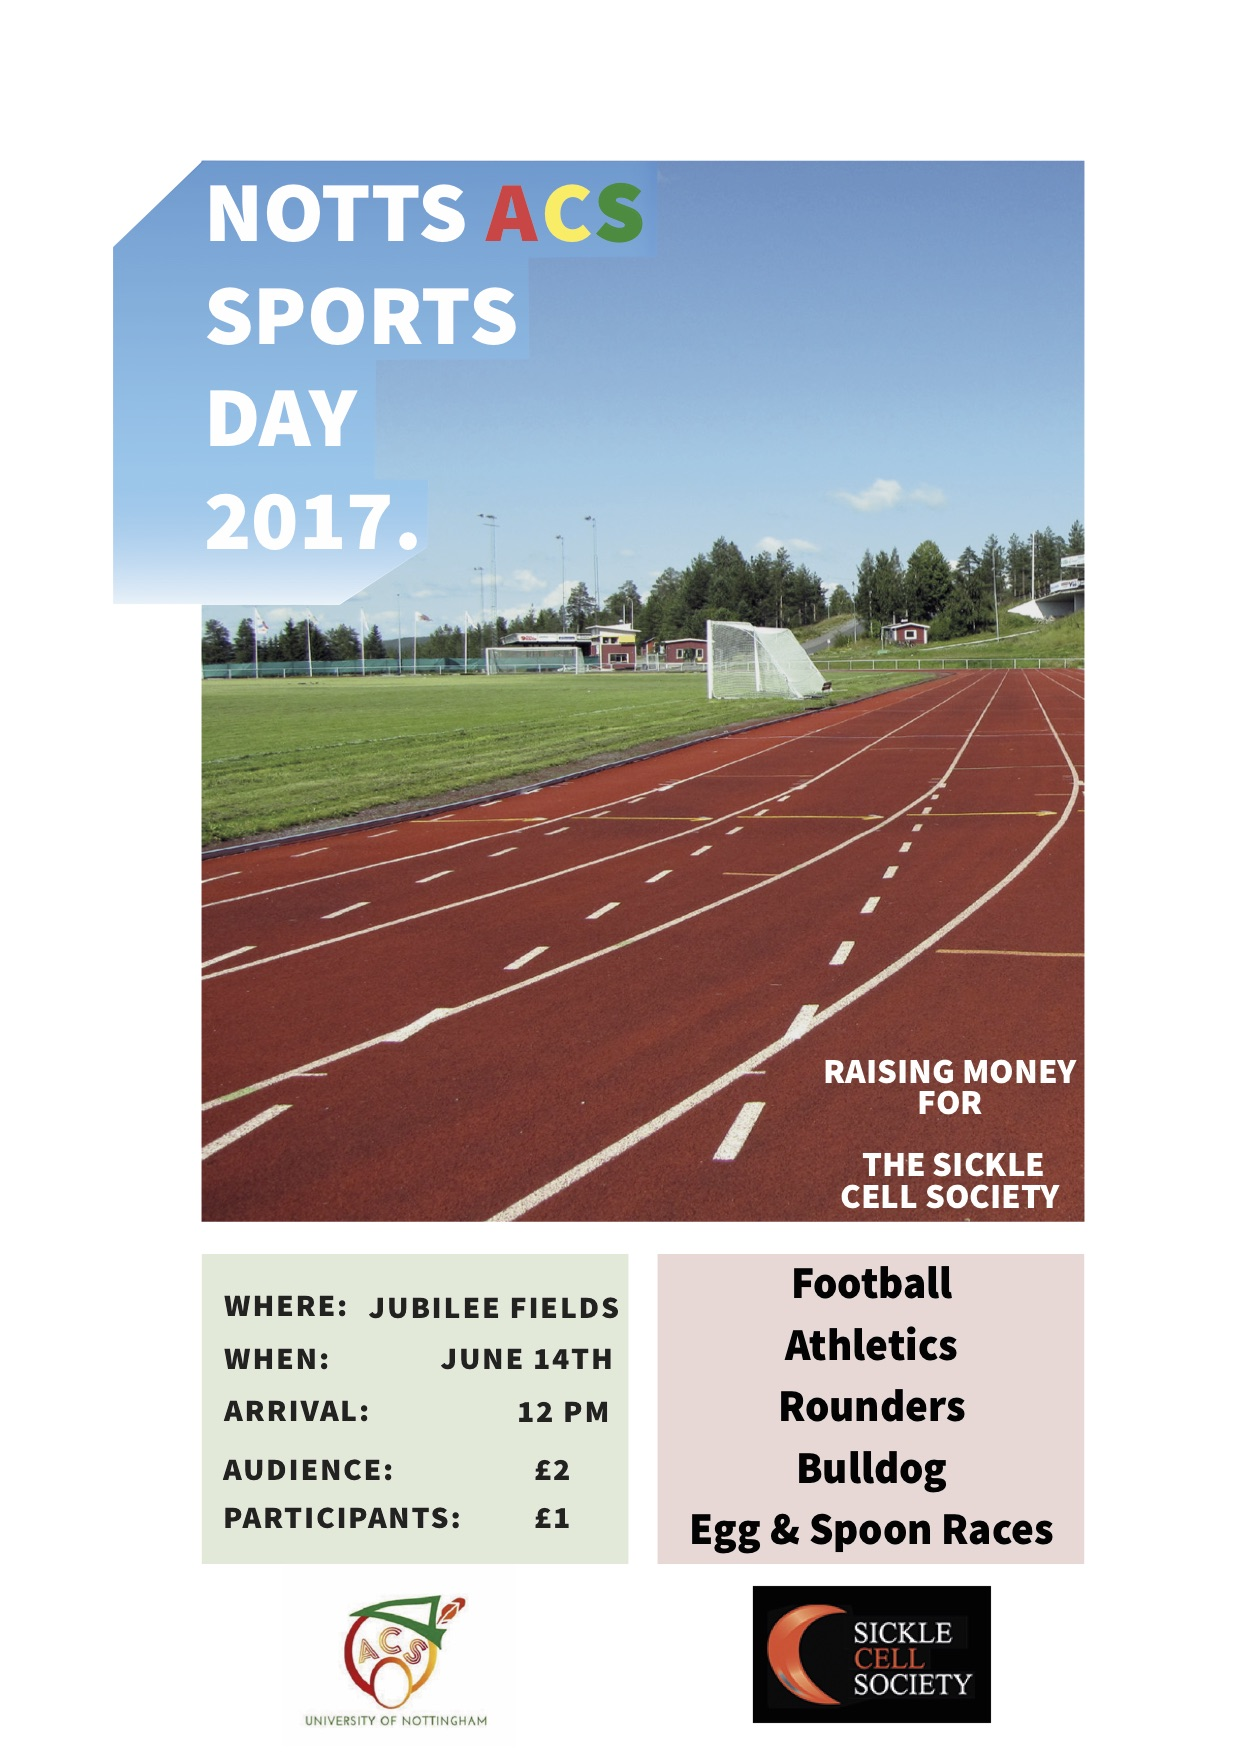 2JNotts ACS Sports Day '17 Poster.jpg